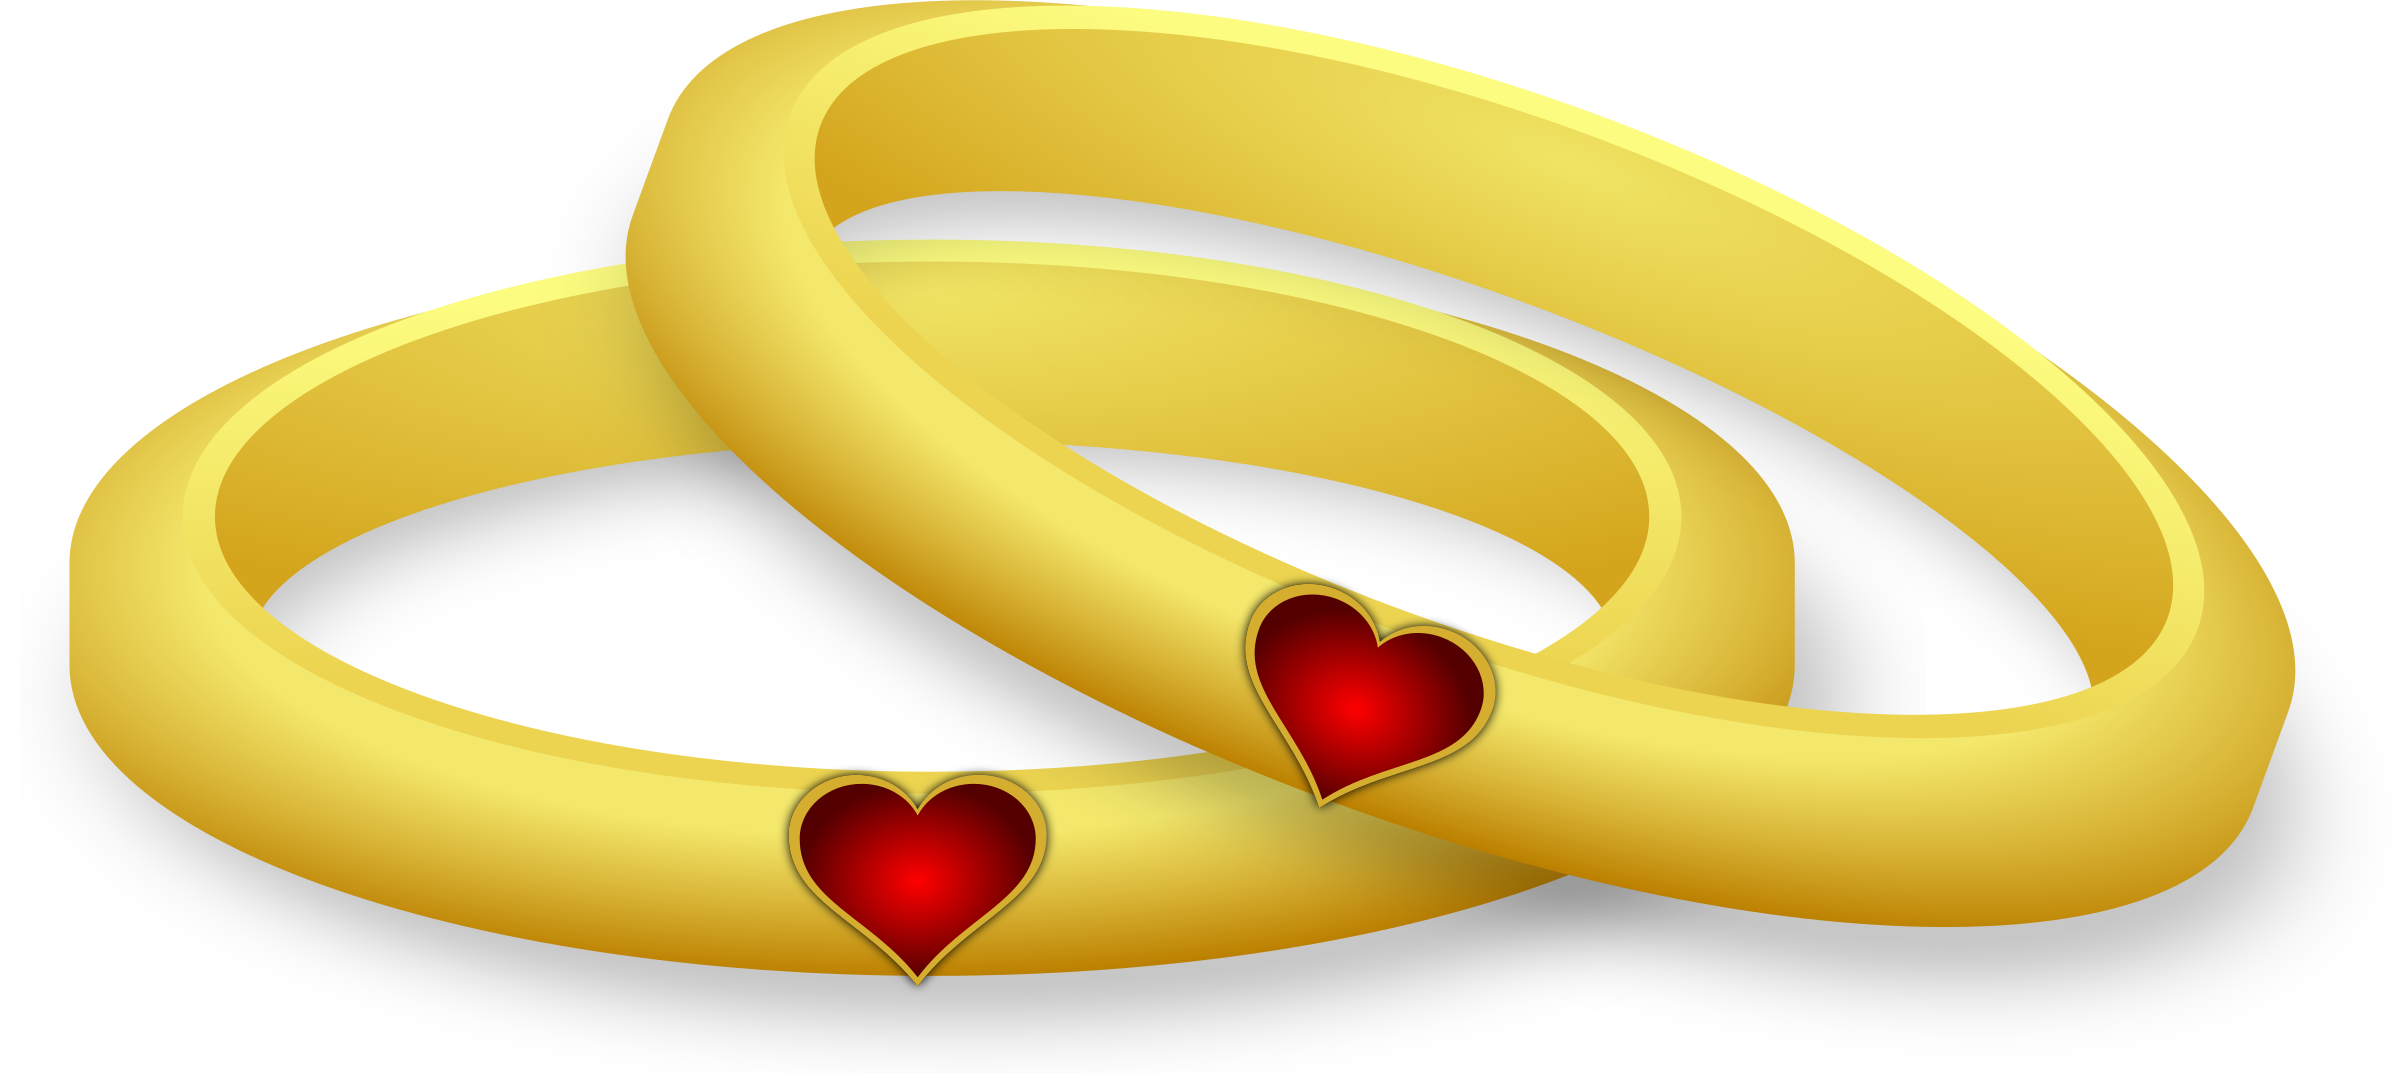 Heart clipart ring. Wedding big image png